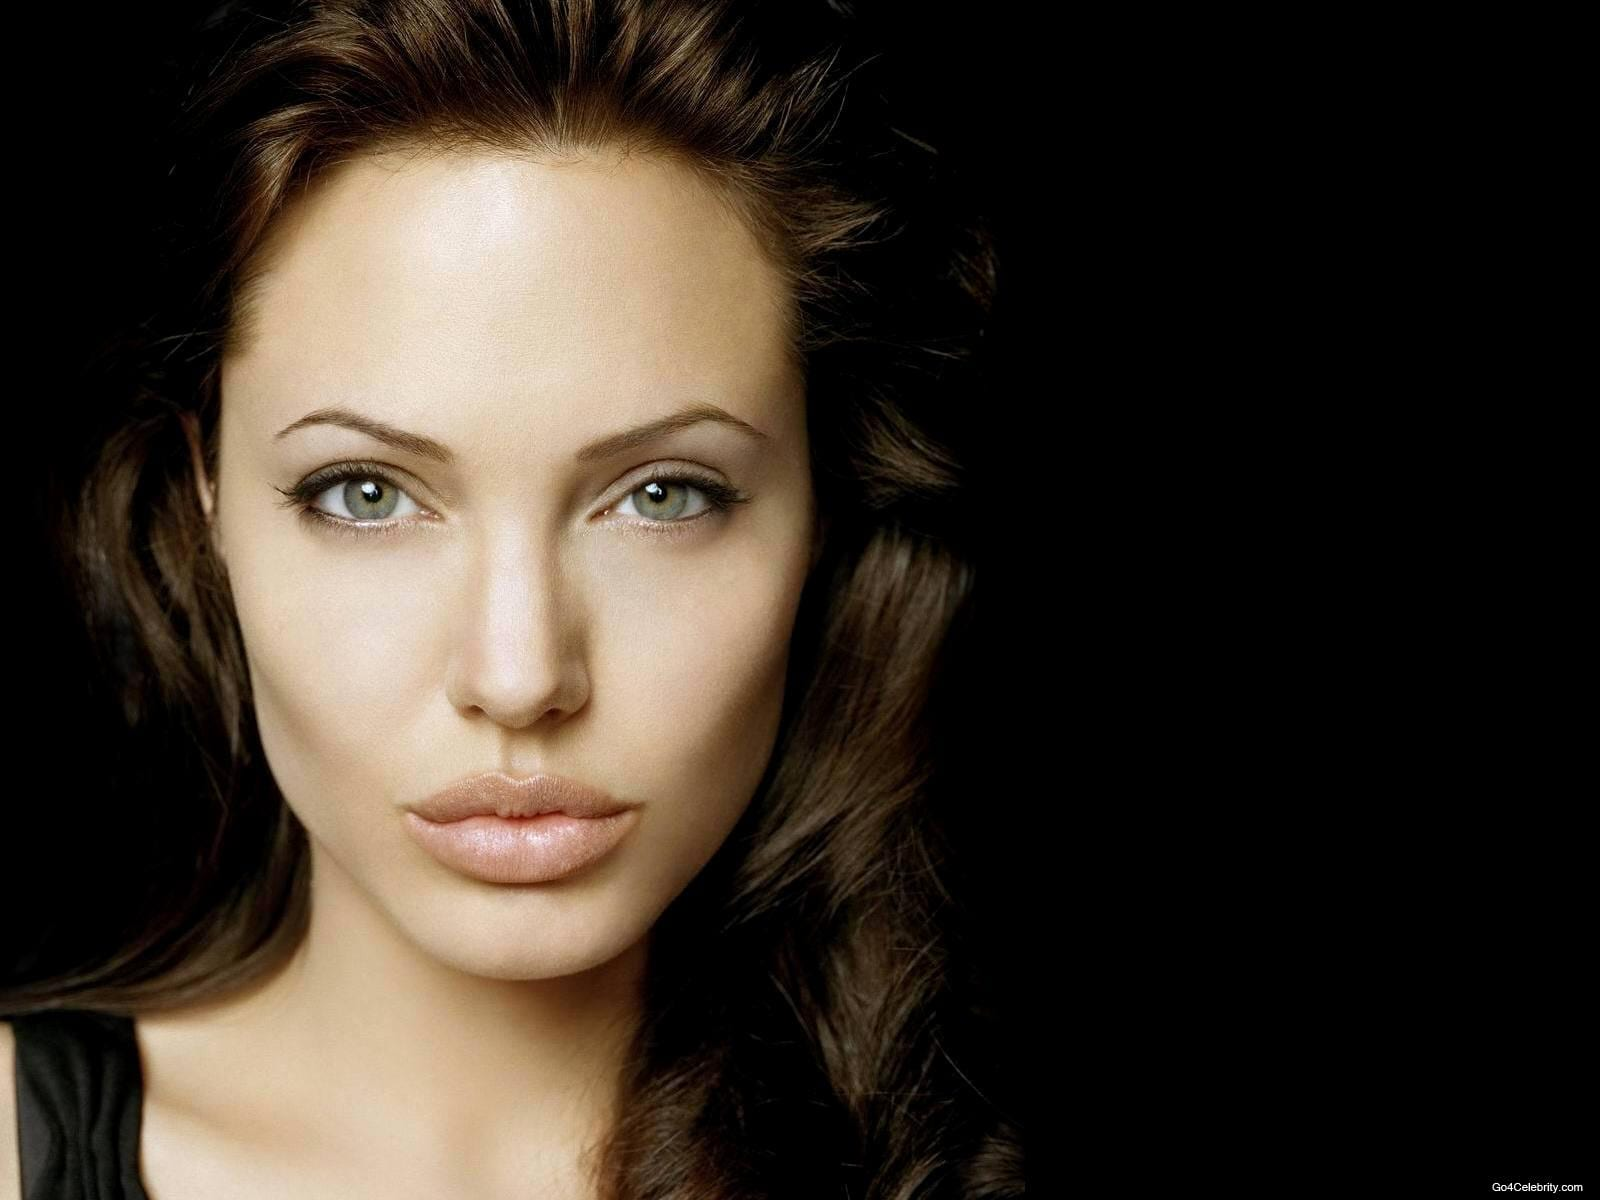 Angelina Jolie - Most Beautiful Women in the World